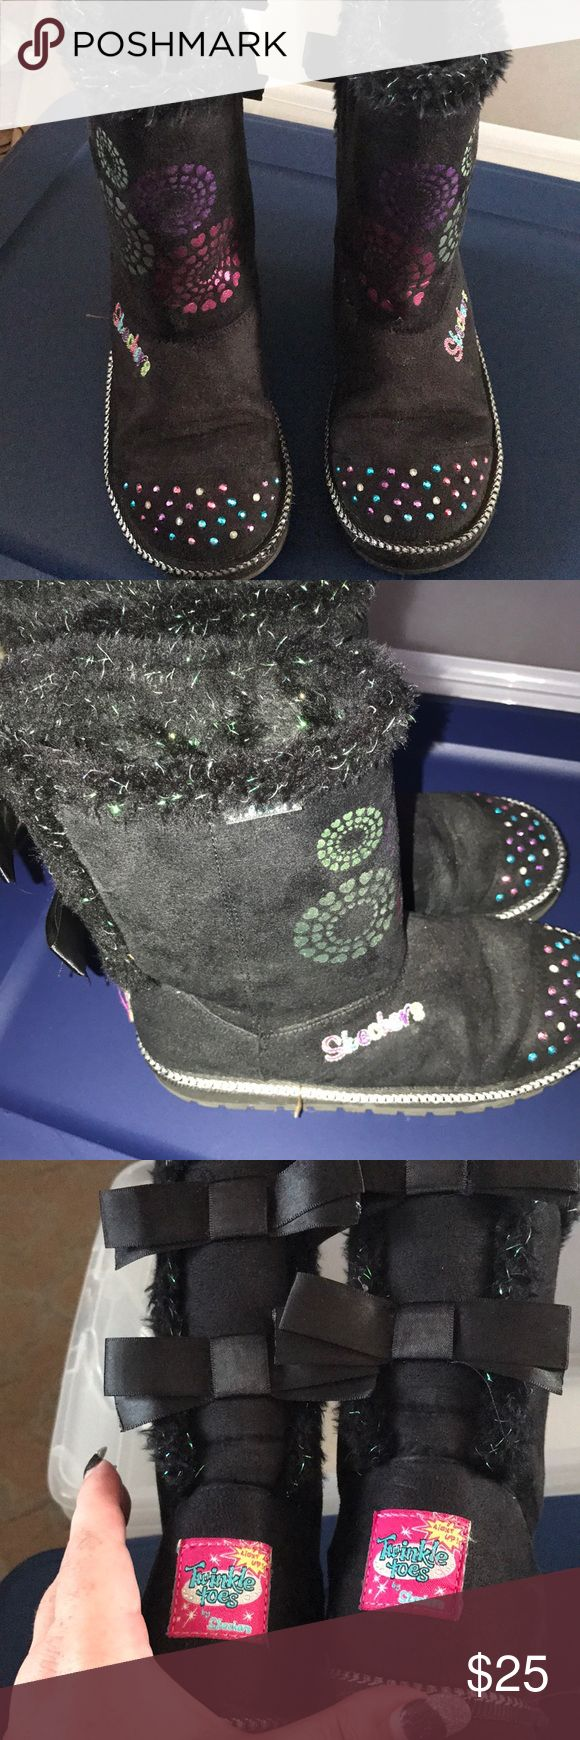 Skechers boots for girls Cute black Skechers boots for girls. In great condition. Unsure of size. Light up feature may not work Skechers Shoes Boots